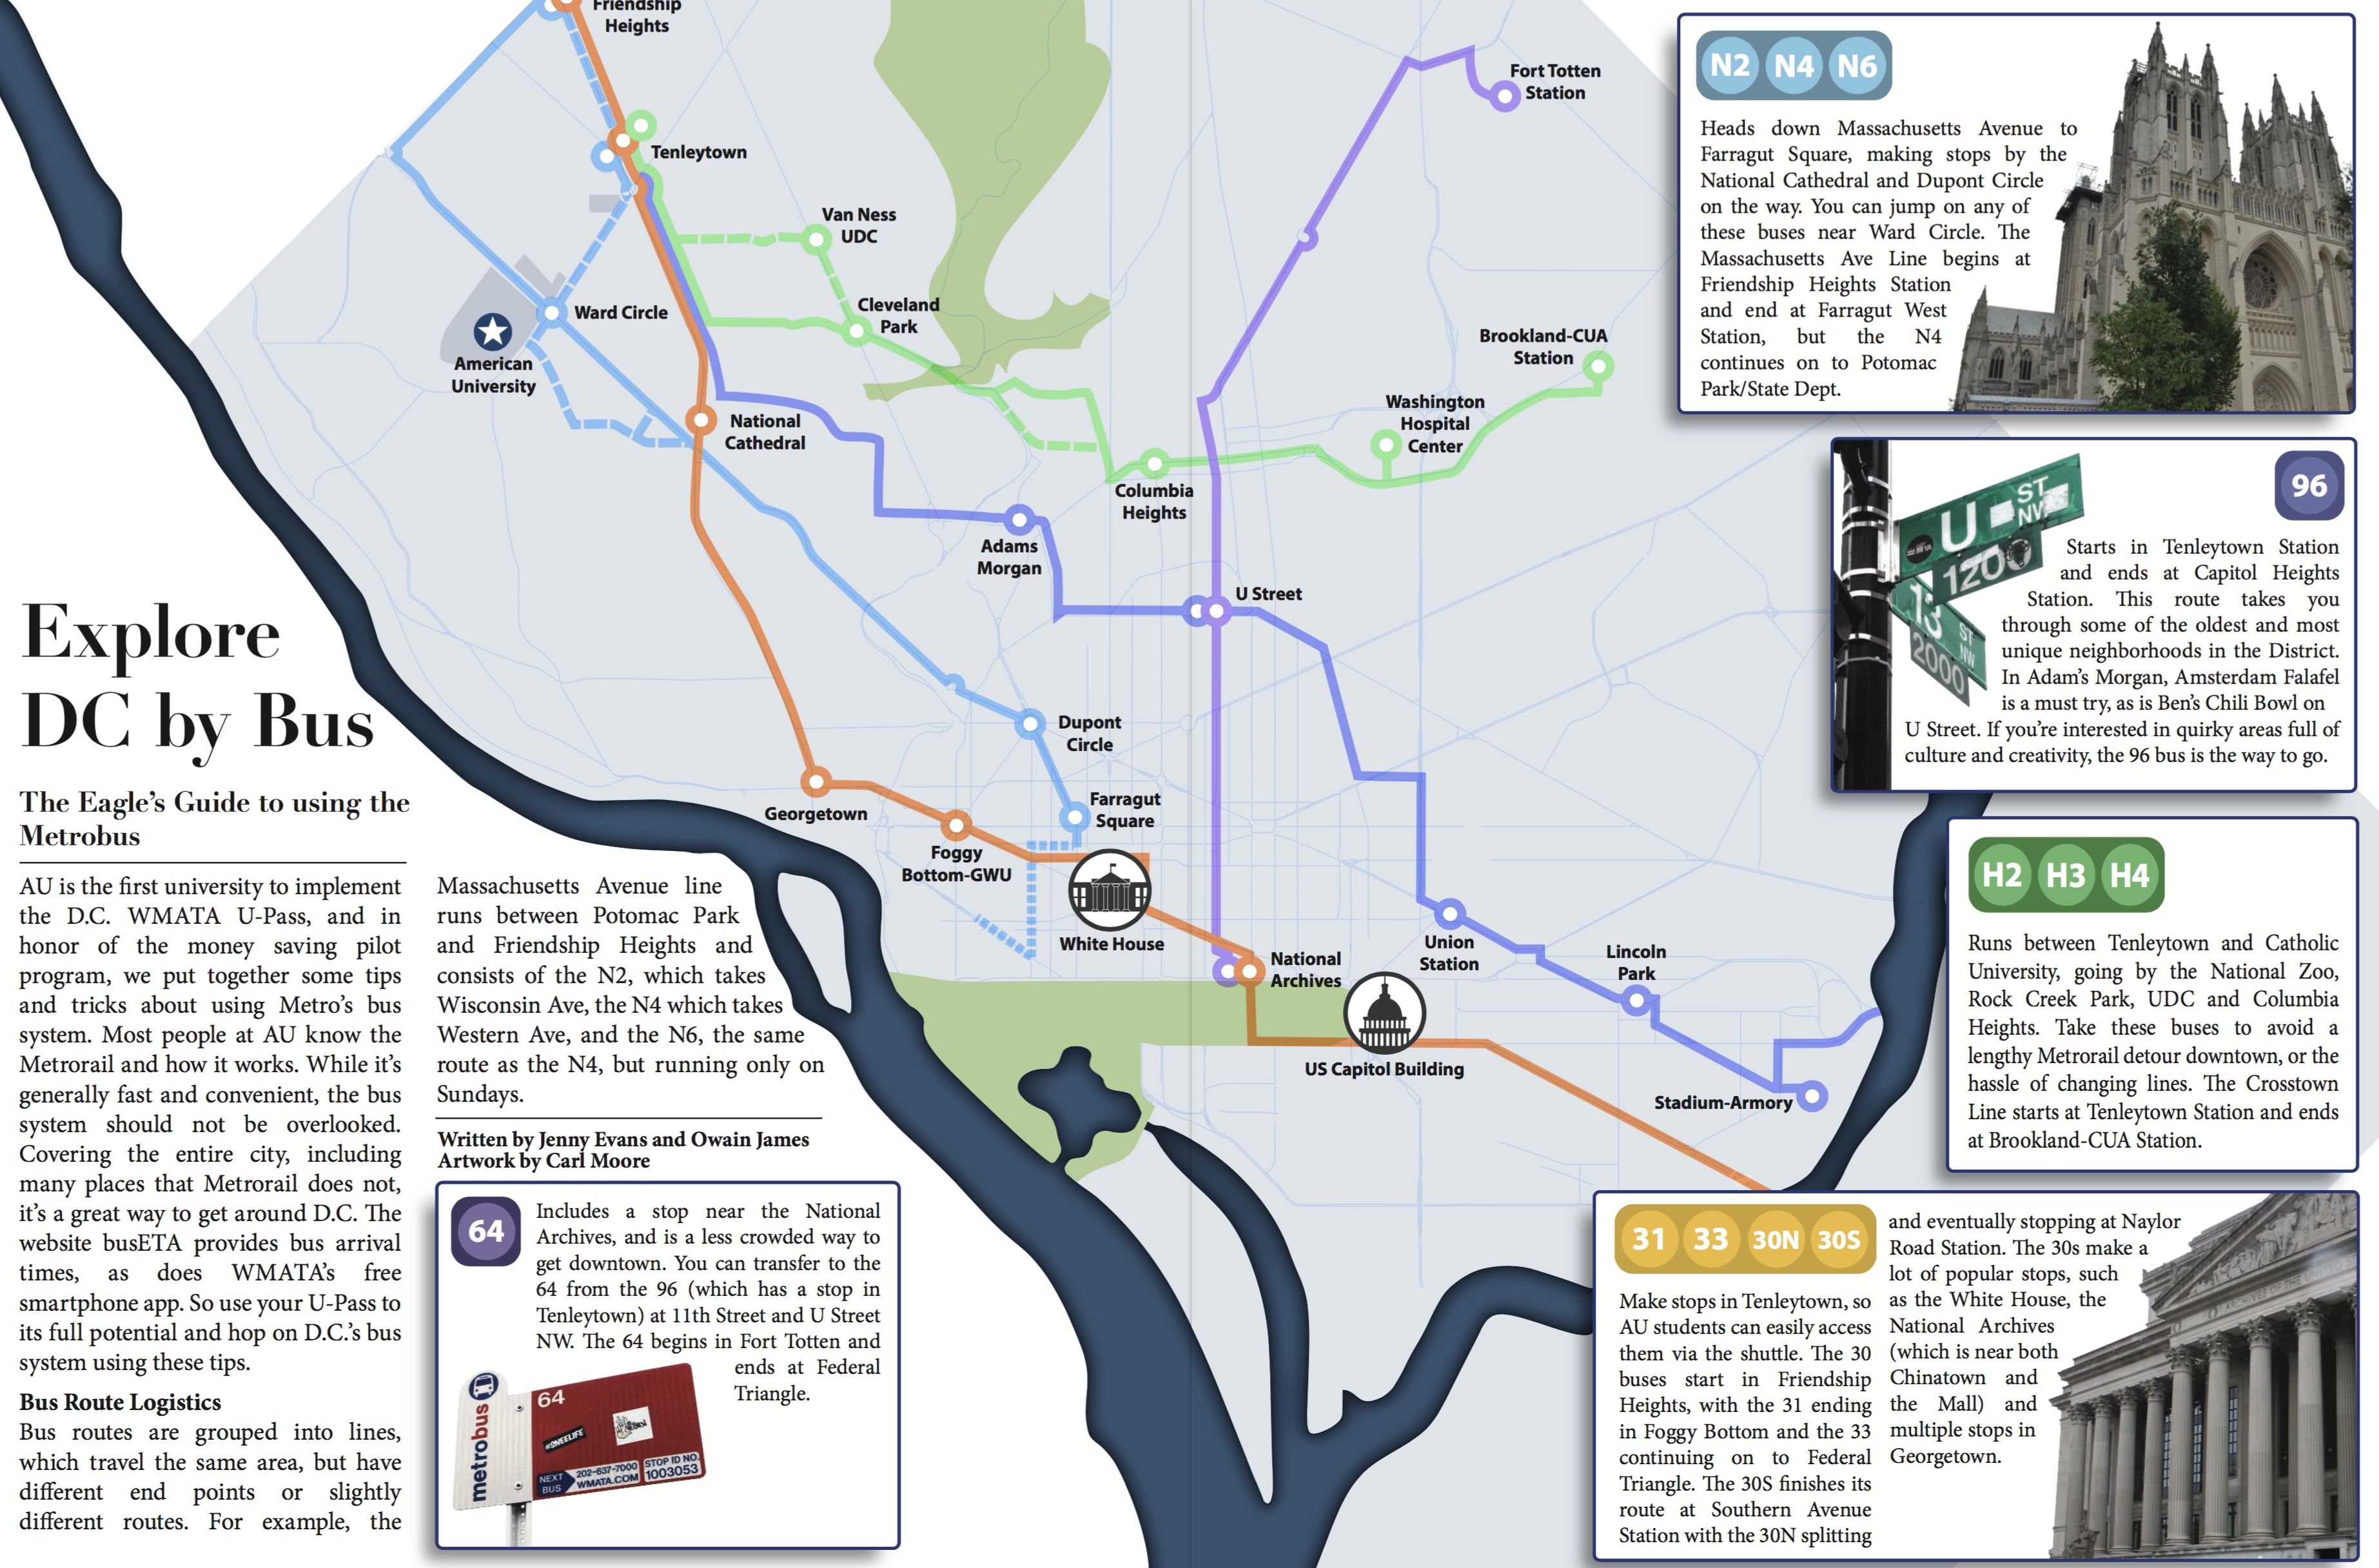 Straight from print: Explore DC by bus